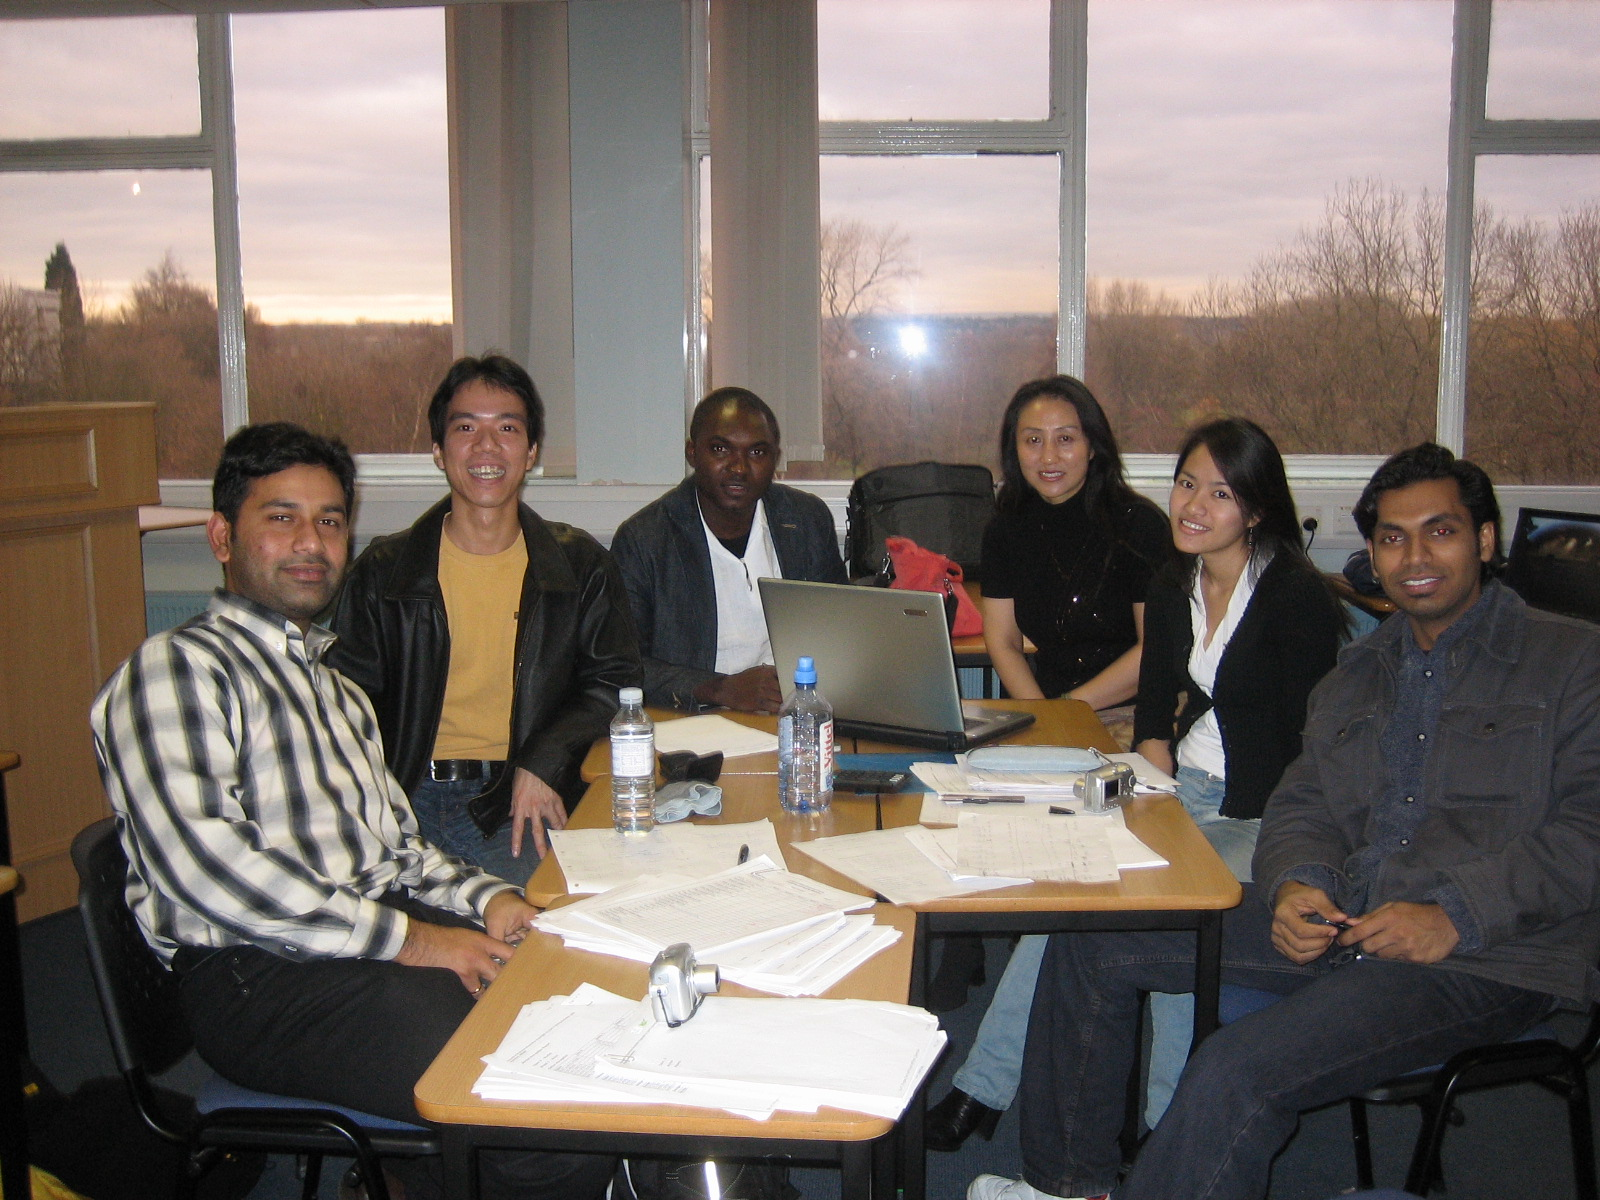 The Salford MBA -Le Hung; working group